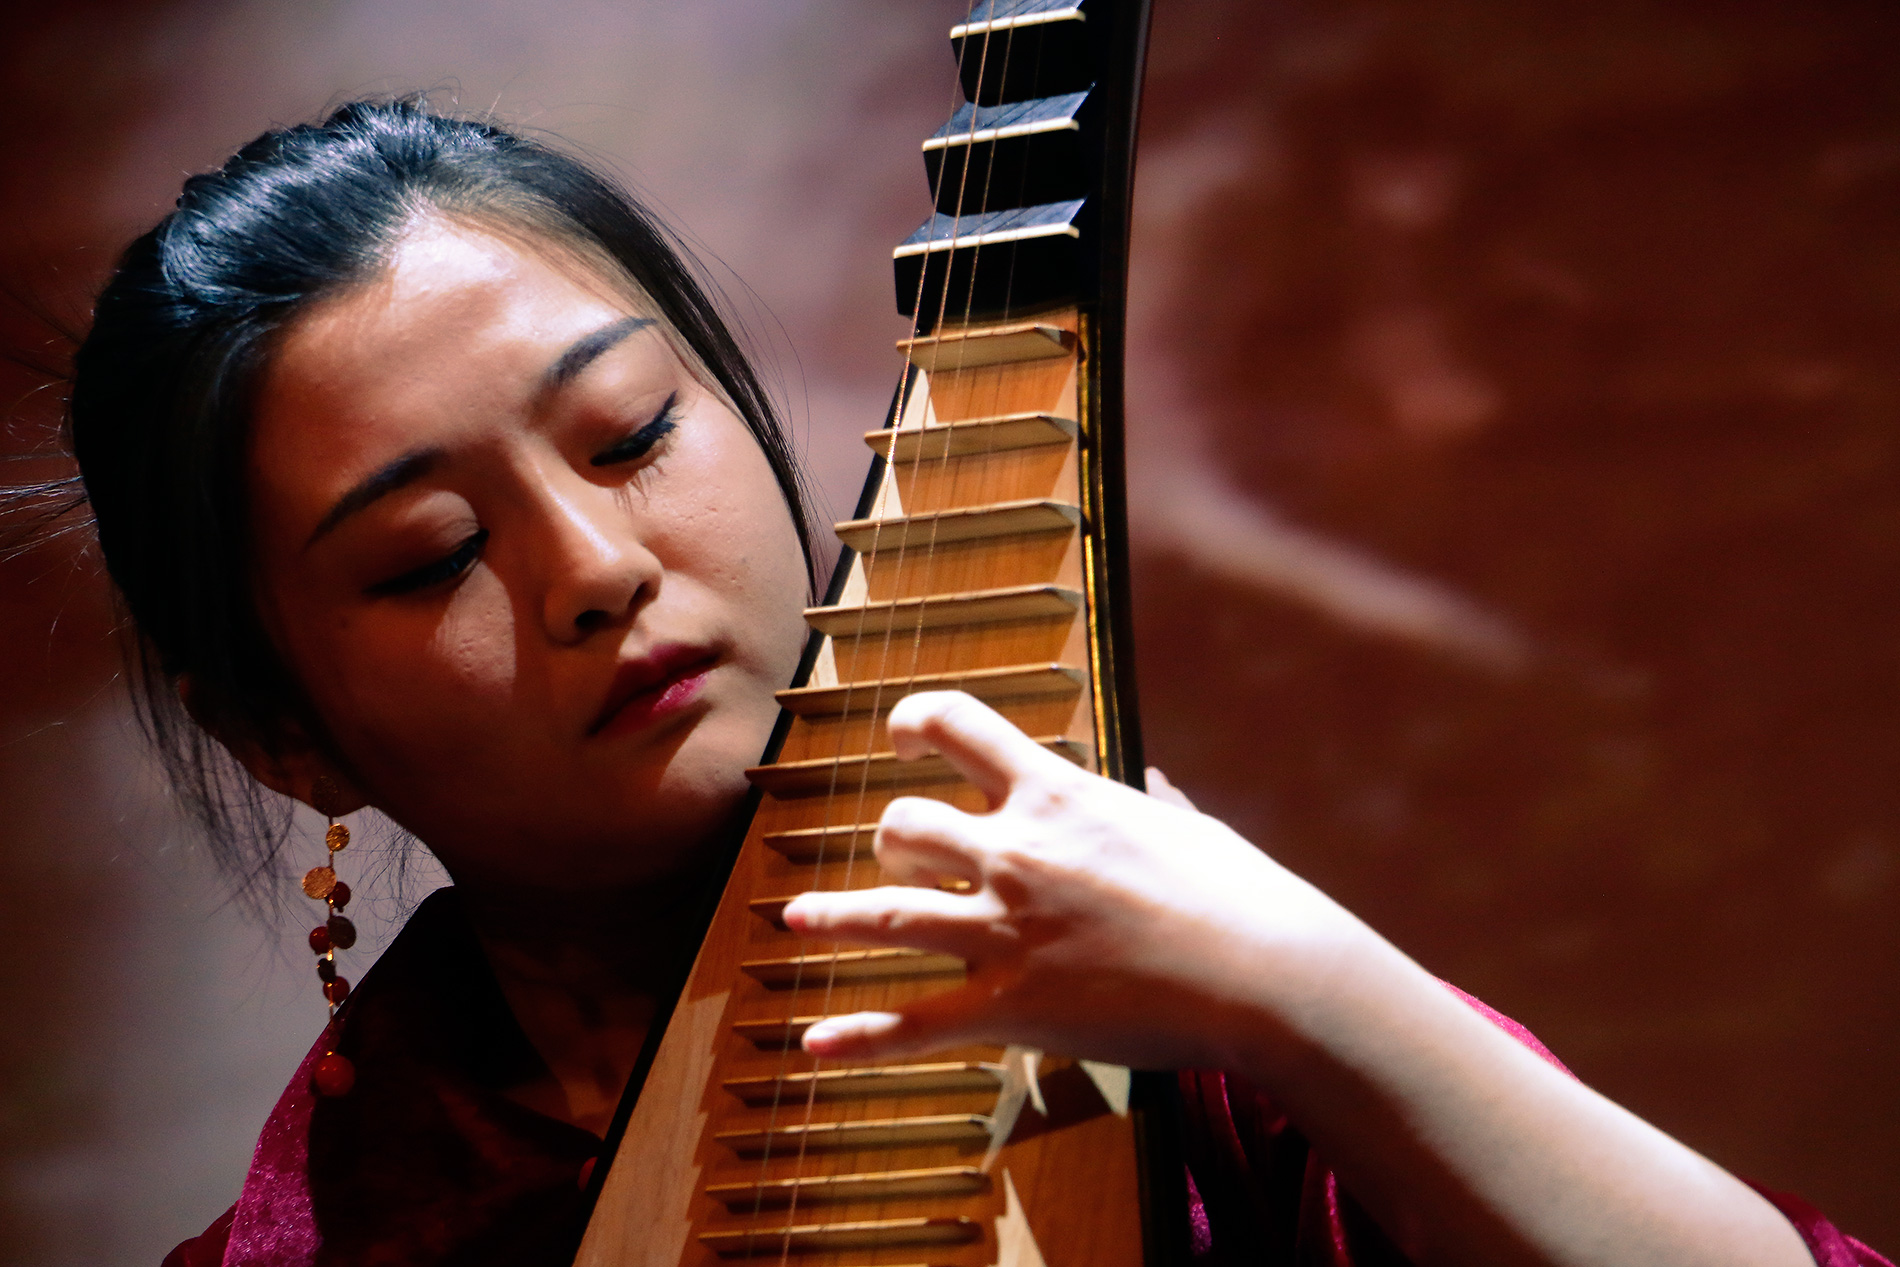 Siyang Chou shows proficiency in playing the Chinese lute, also known as the pipa. It's a four-stringed instrument dating back for almost two thousand years. Picture: Tony Öhberg for Finland Today